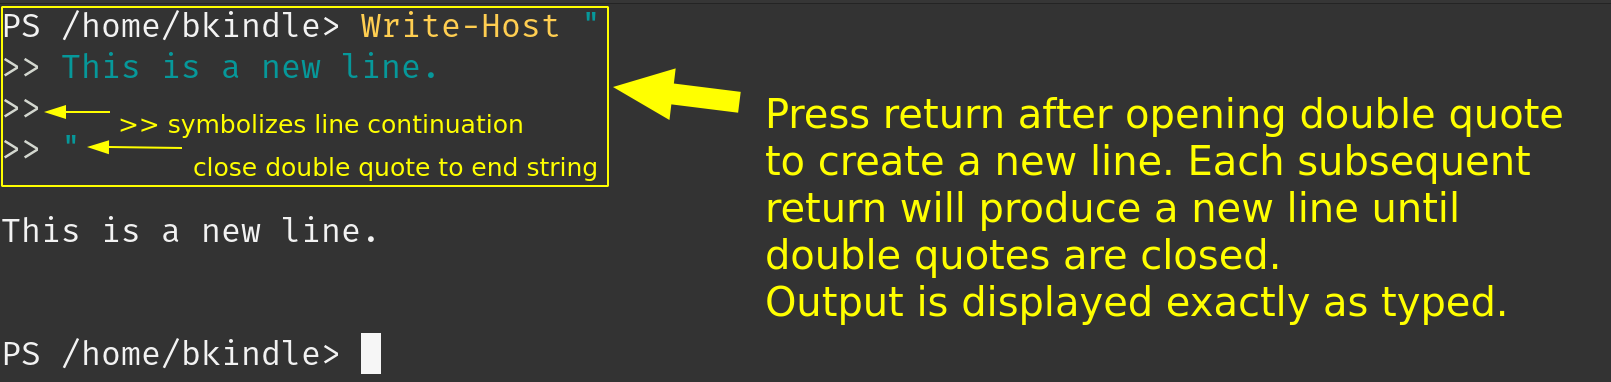 Creating new lines with double quotes